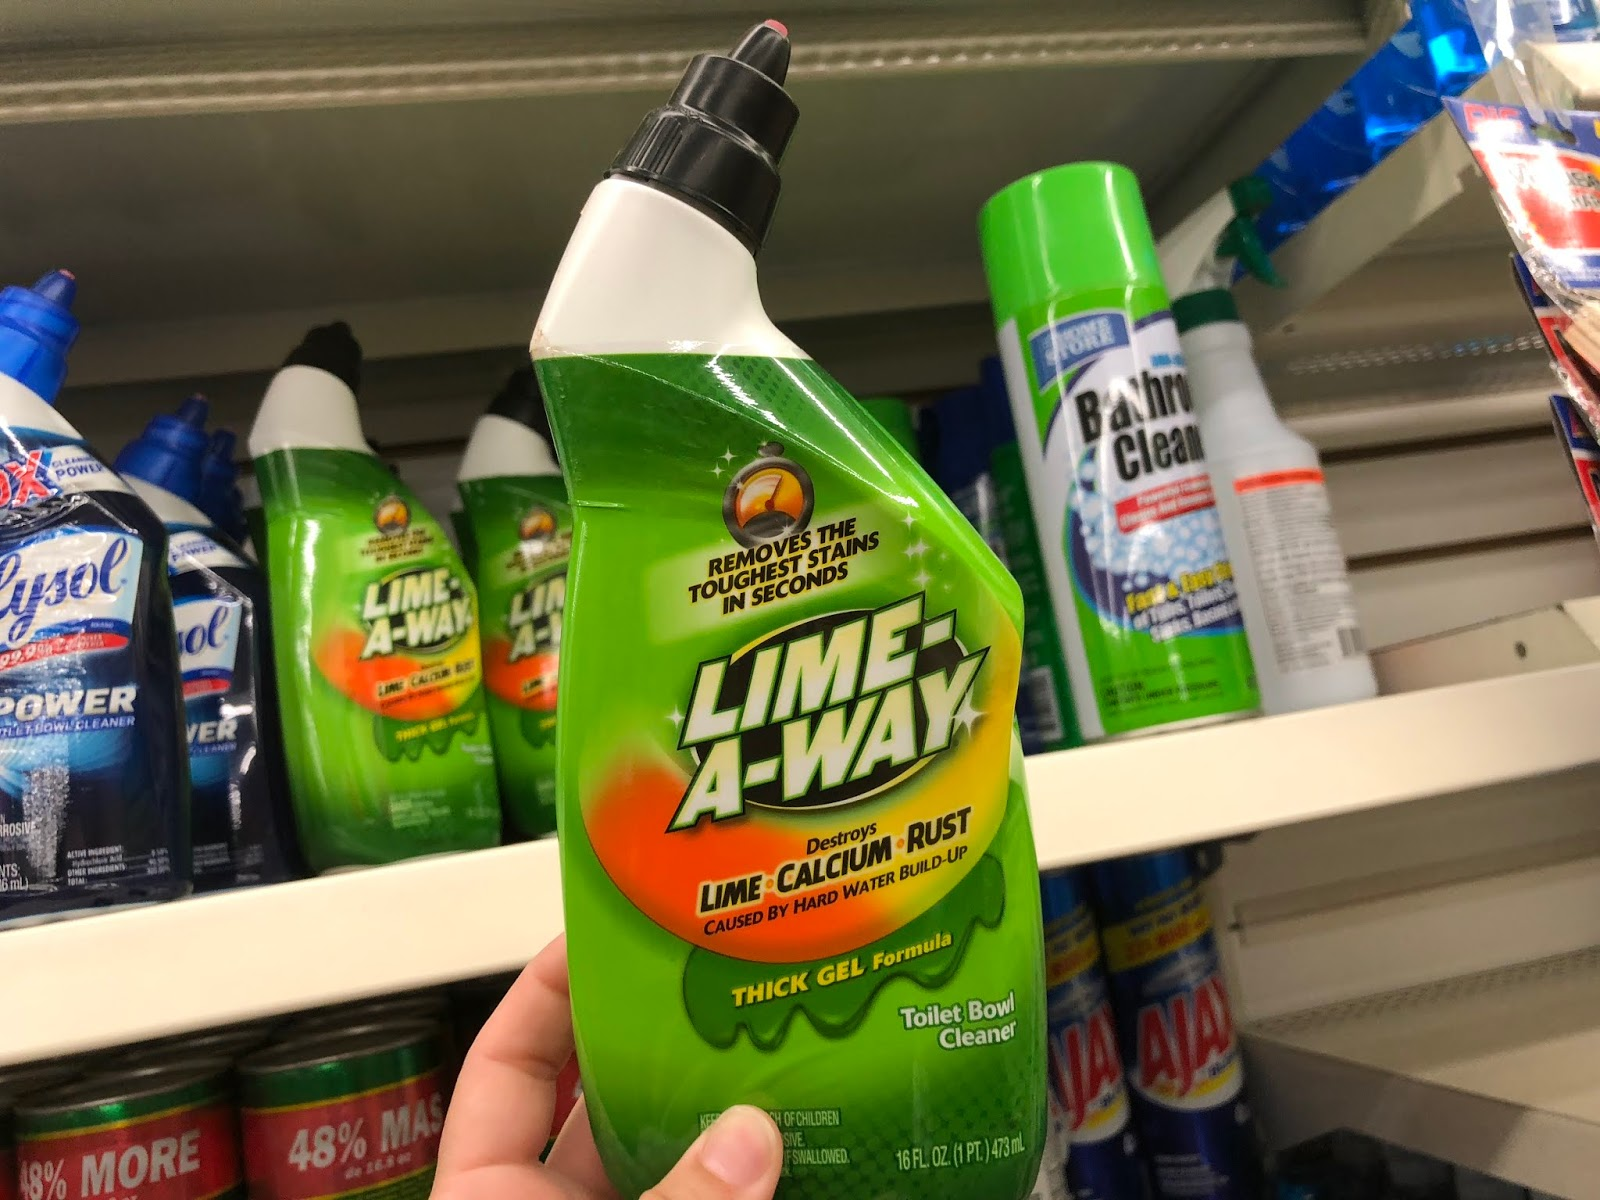 Dollar Tree 25 Cent Lime A Way Toilet Bowl Cleaner